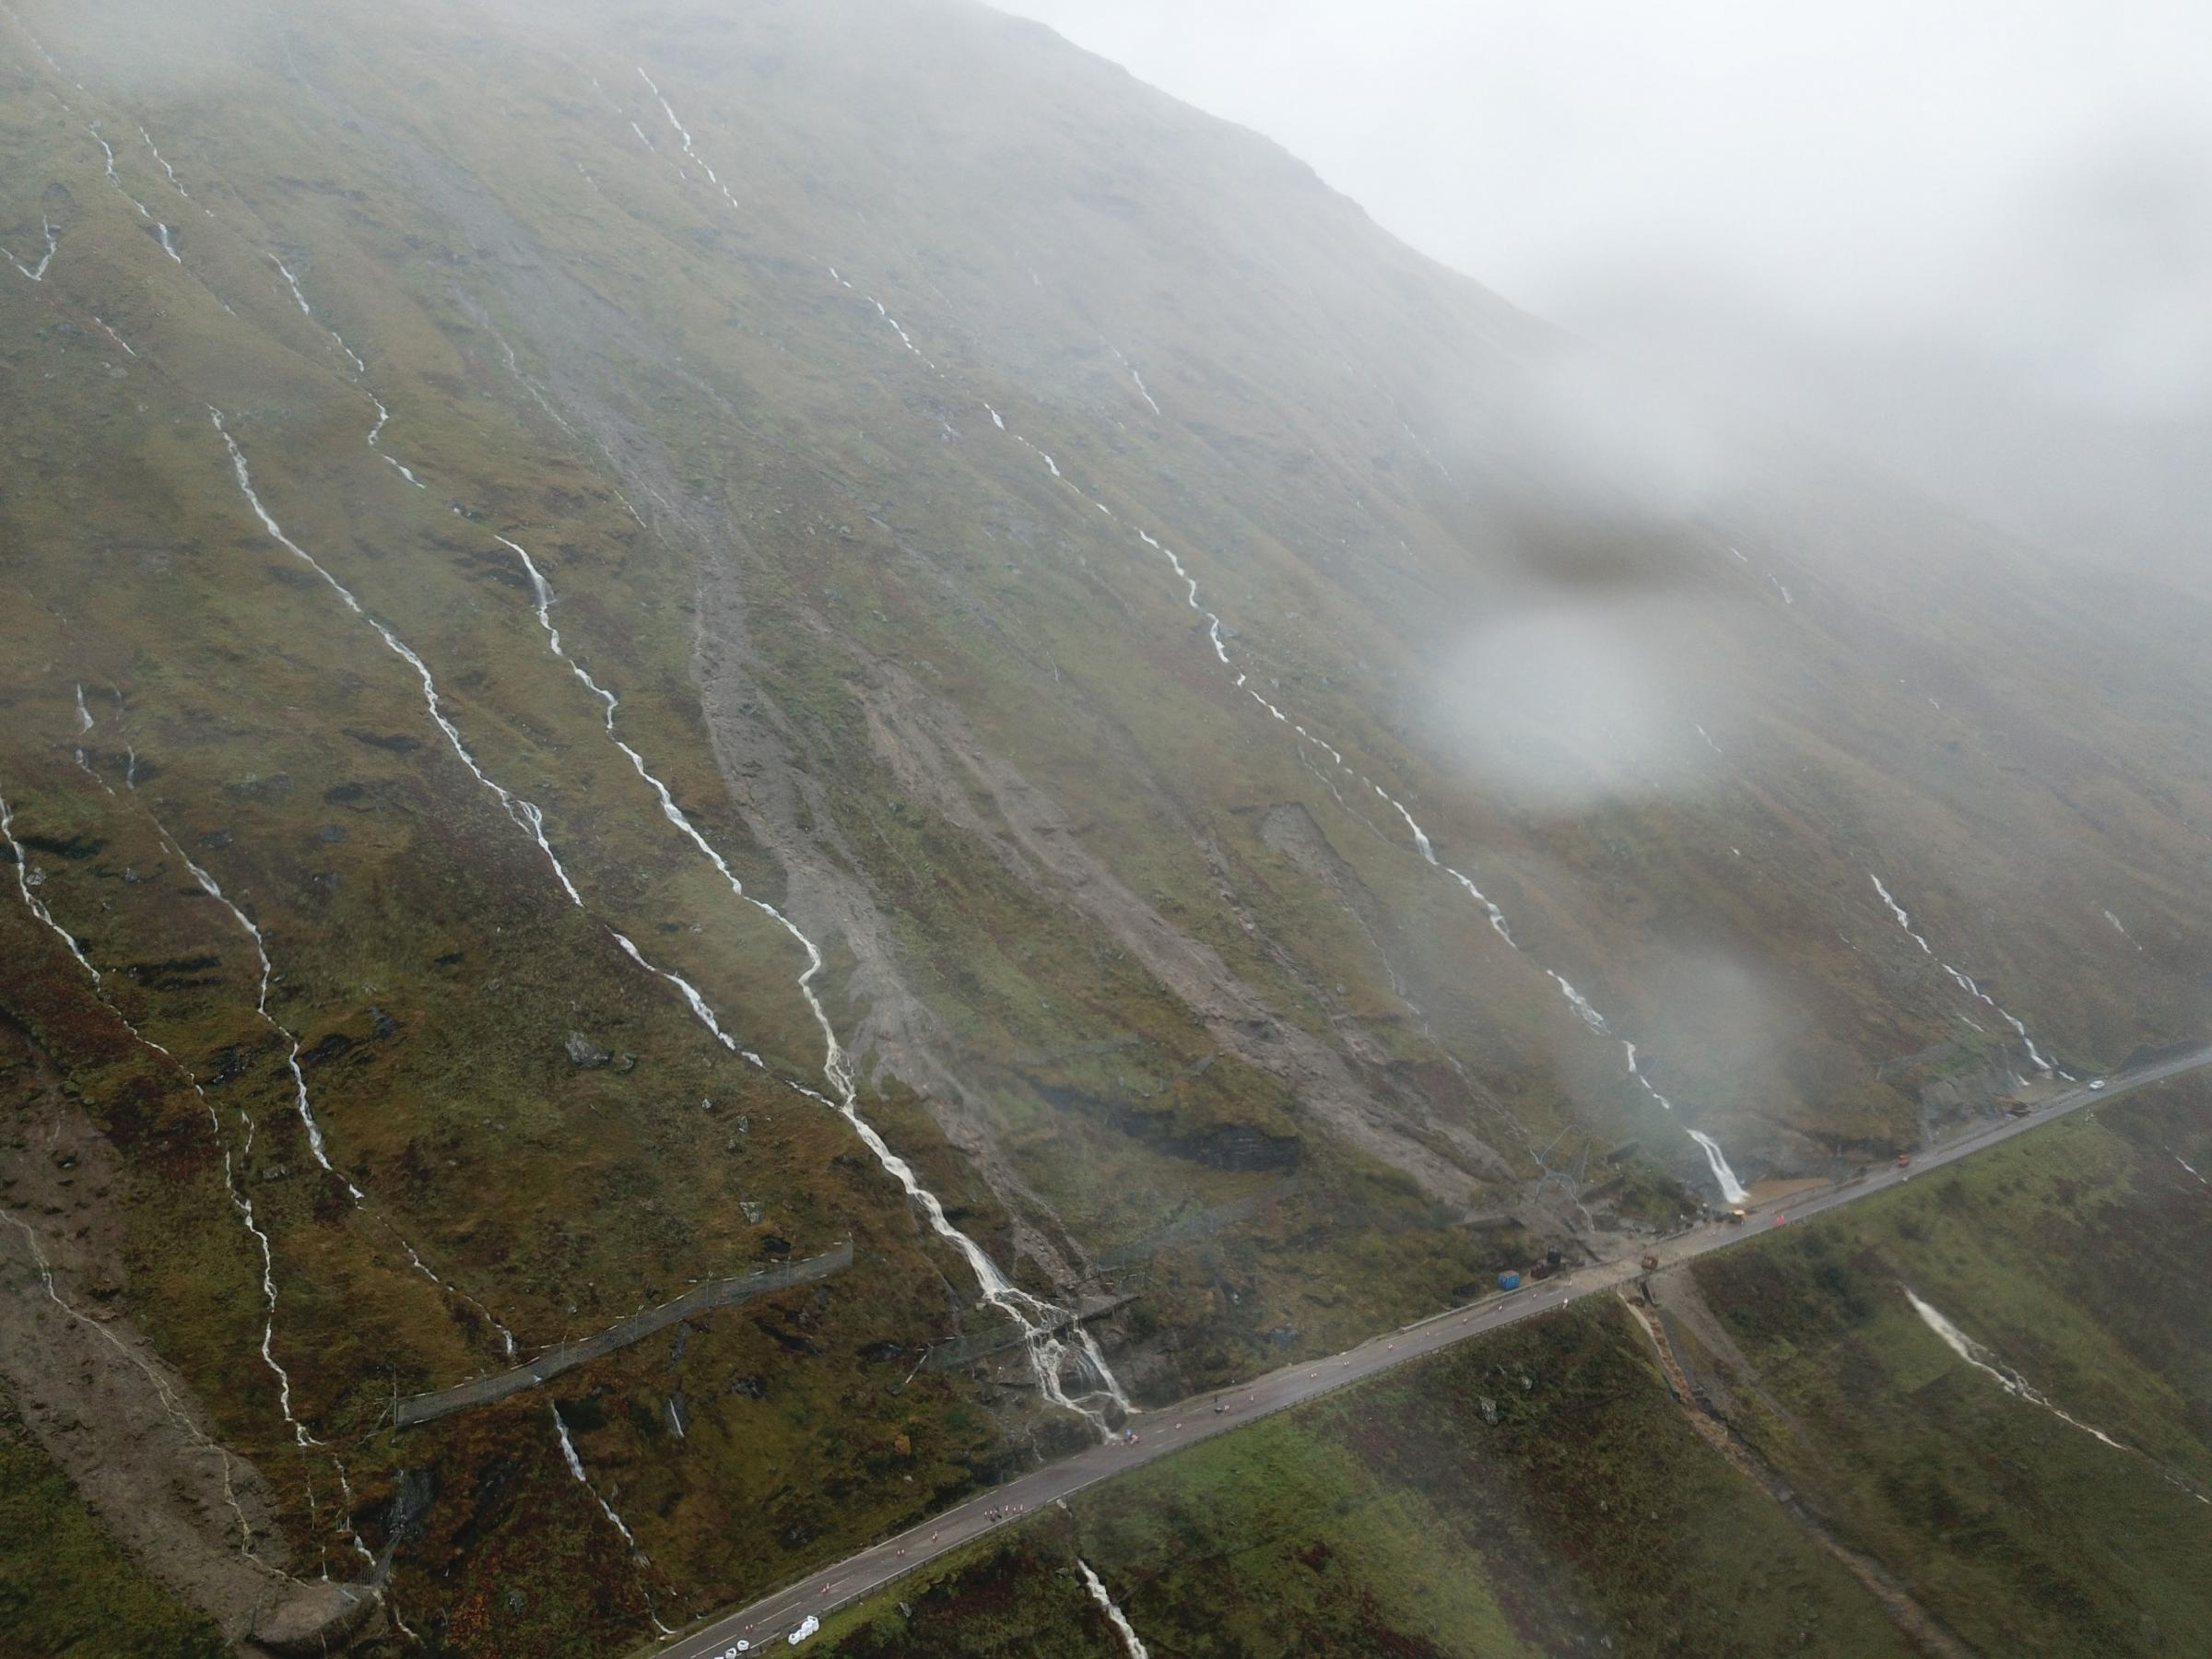 Undated handout photo issued by Geo-Rope of a landslip on the A83 Rest And Be Thankful road in Argyll and Bute which remains shut due to severe severe weather causing numerous landslips. PRESS ASSOCIATION Photo. Issue date: Wednesday October 10, 2018. Roa